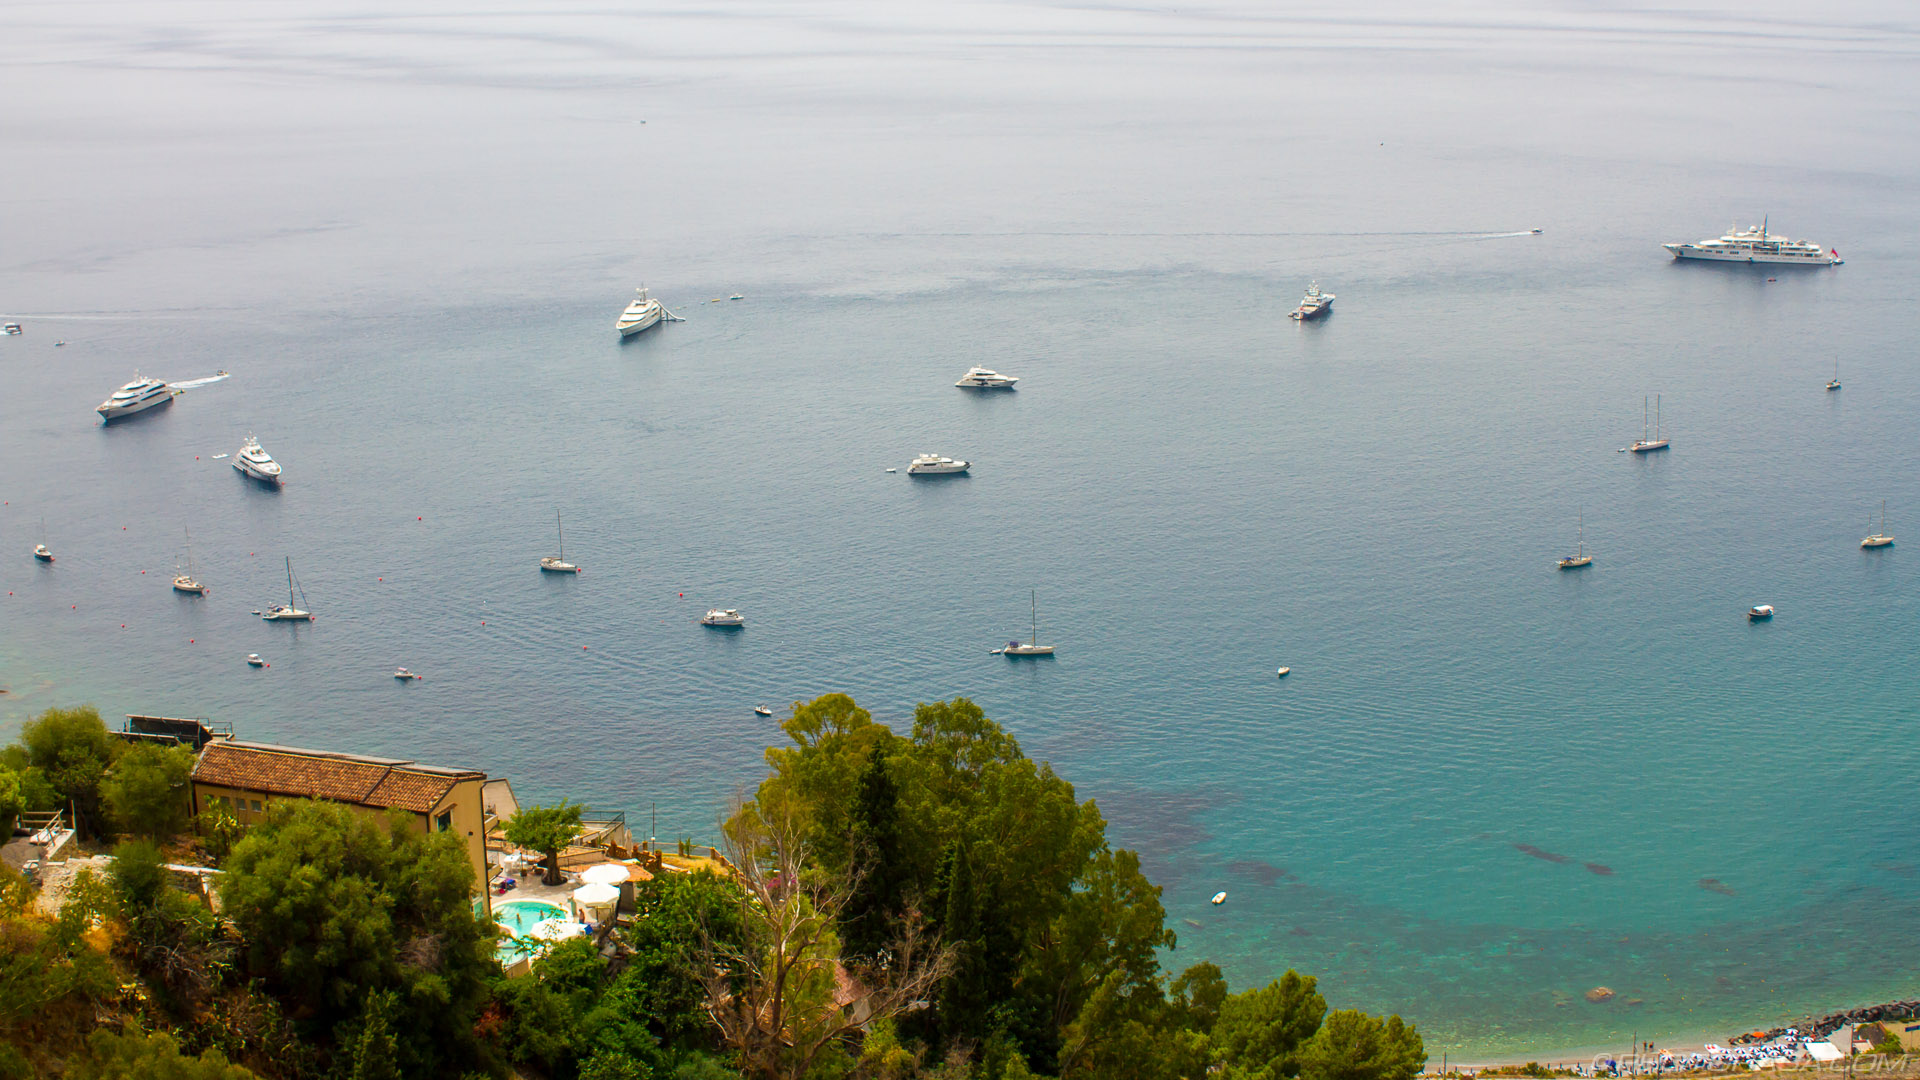 http://photorasa.com/taormina/boats-in-the-harbour/